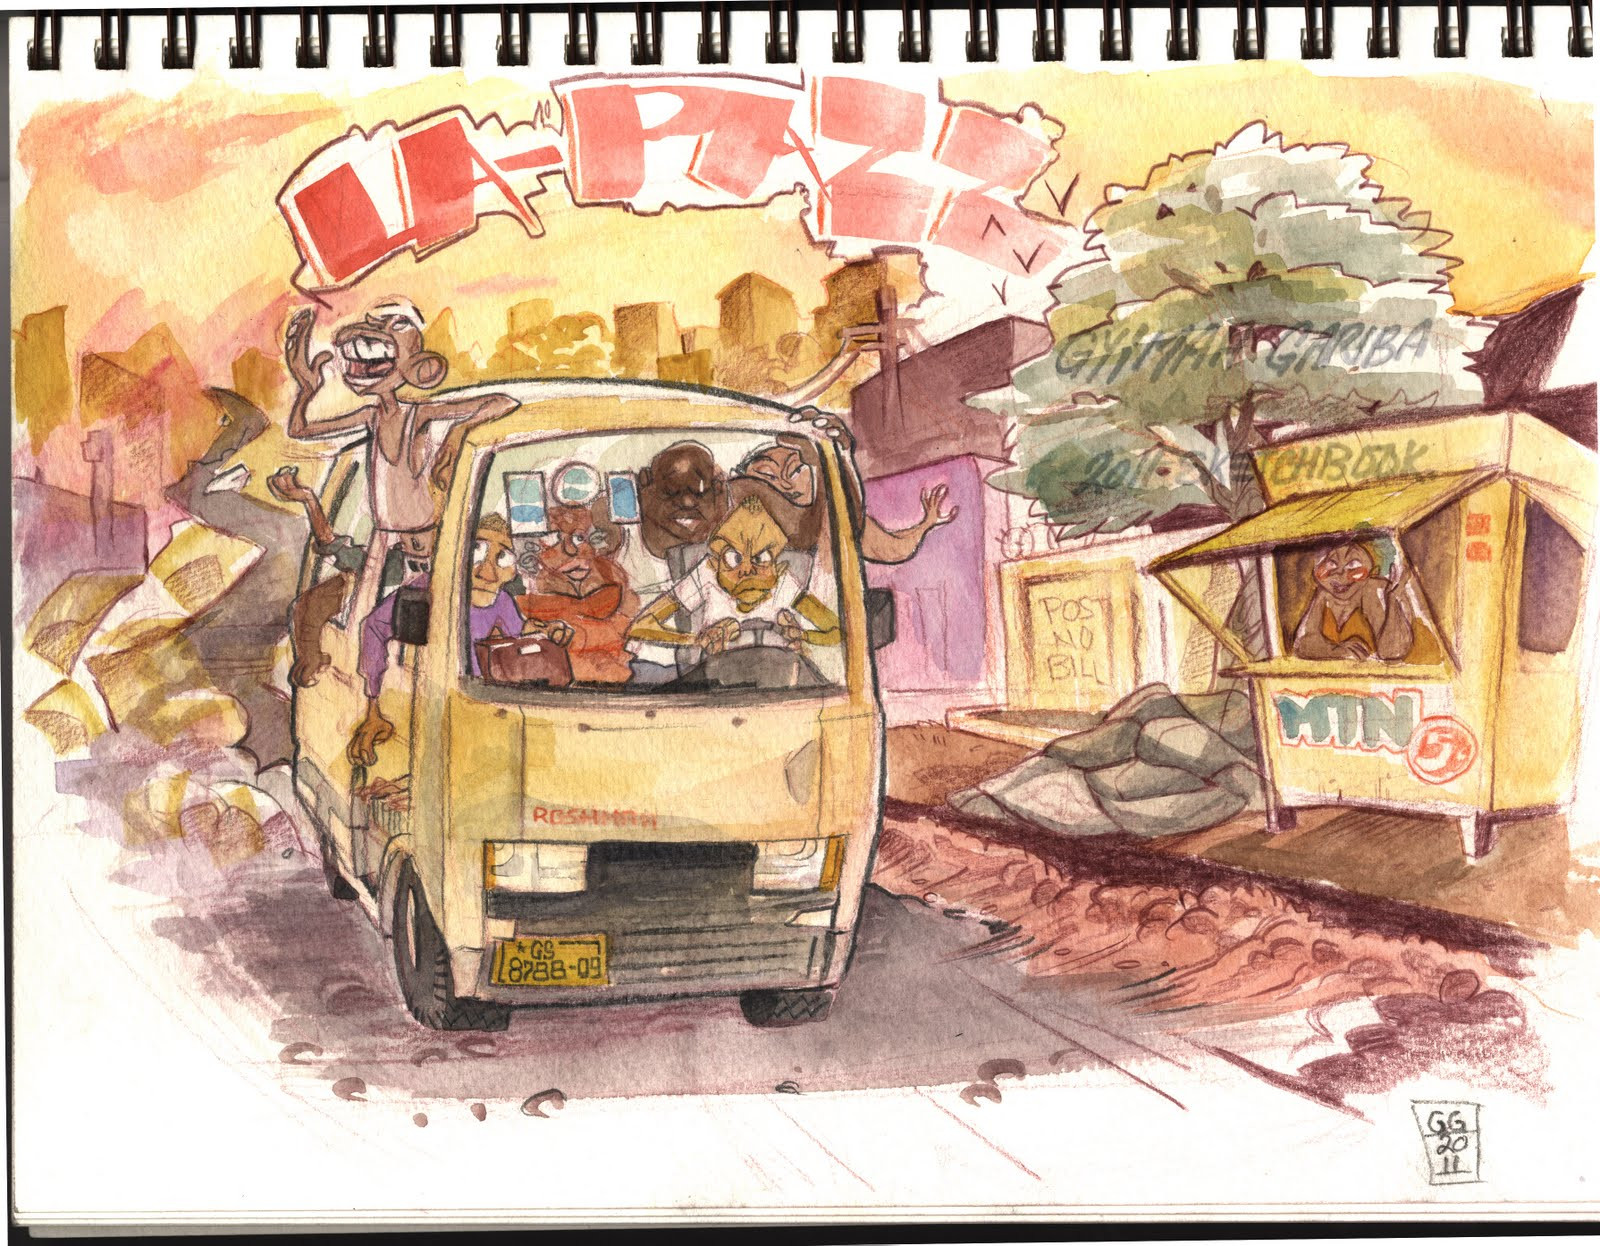 Accra-based artist Gyimah Gariba takes on the trotro. This be Ghana, oh! http://ggariba.blogspot.com/2011/01/this-be-ghanano-problem.html